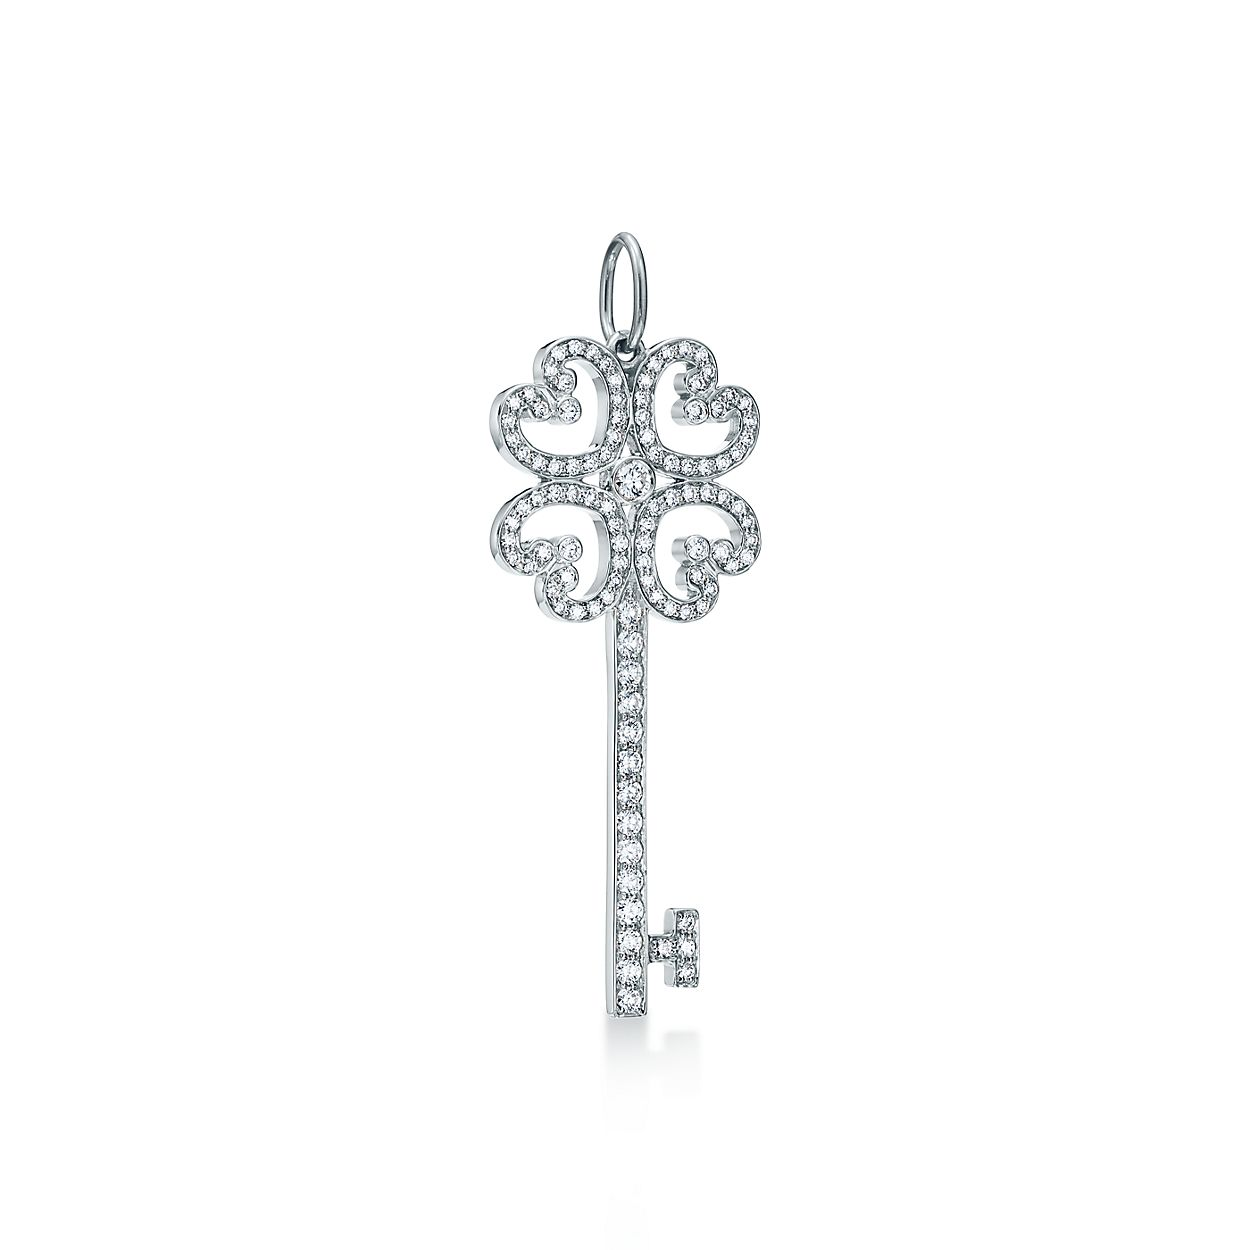 Tiffany keys quatra heart key pendant in platinum with diamonds tiffany keysquatra heart key pendant aloadofball Gallery